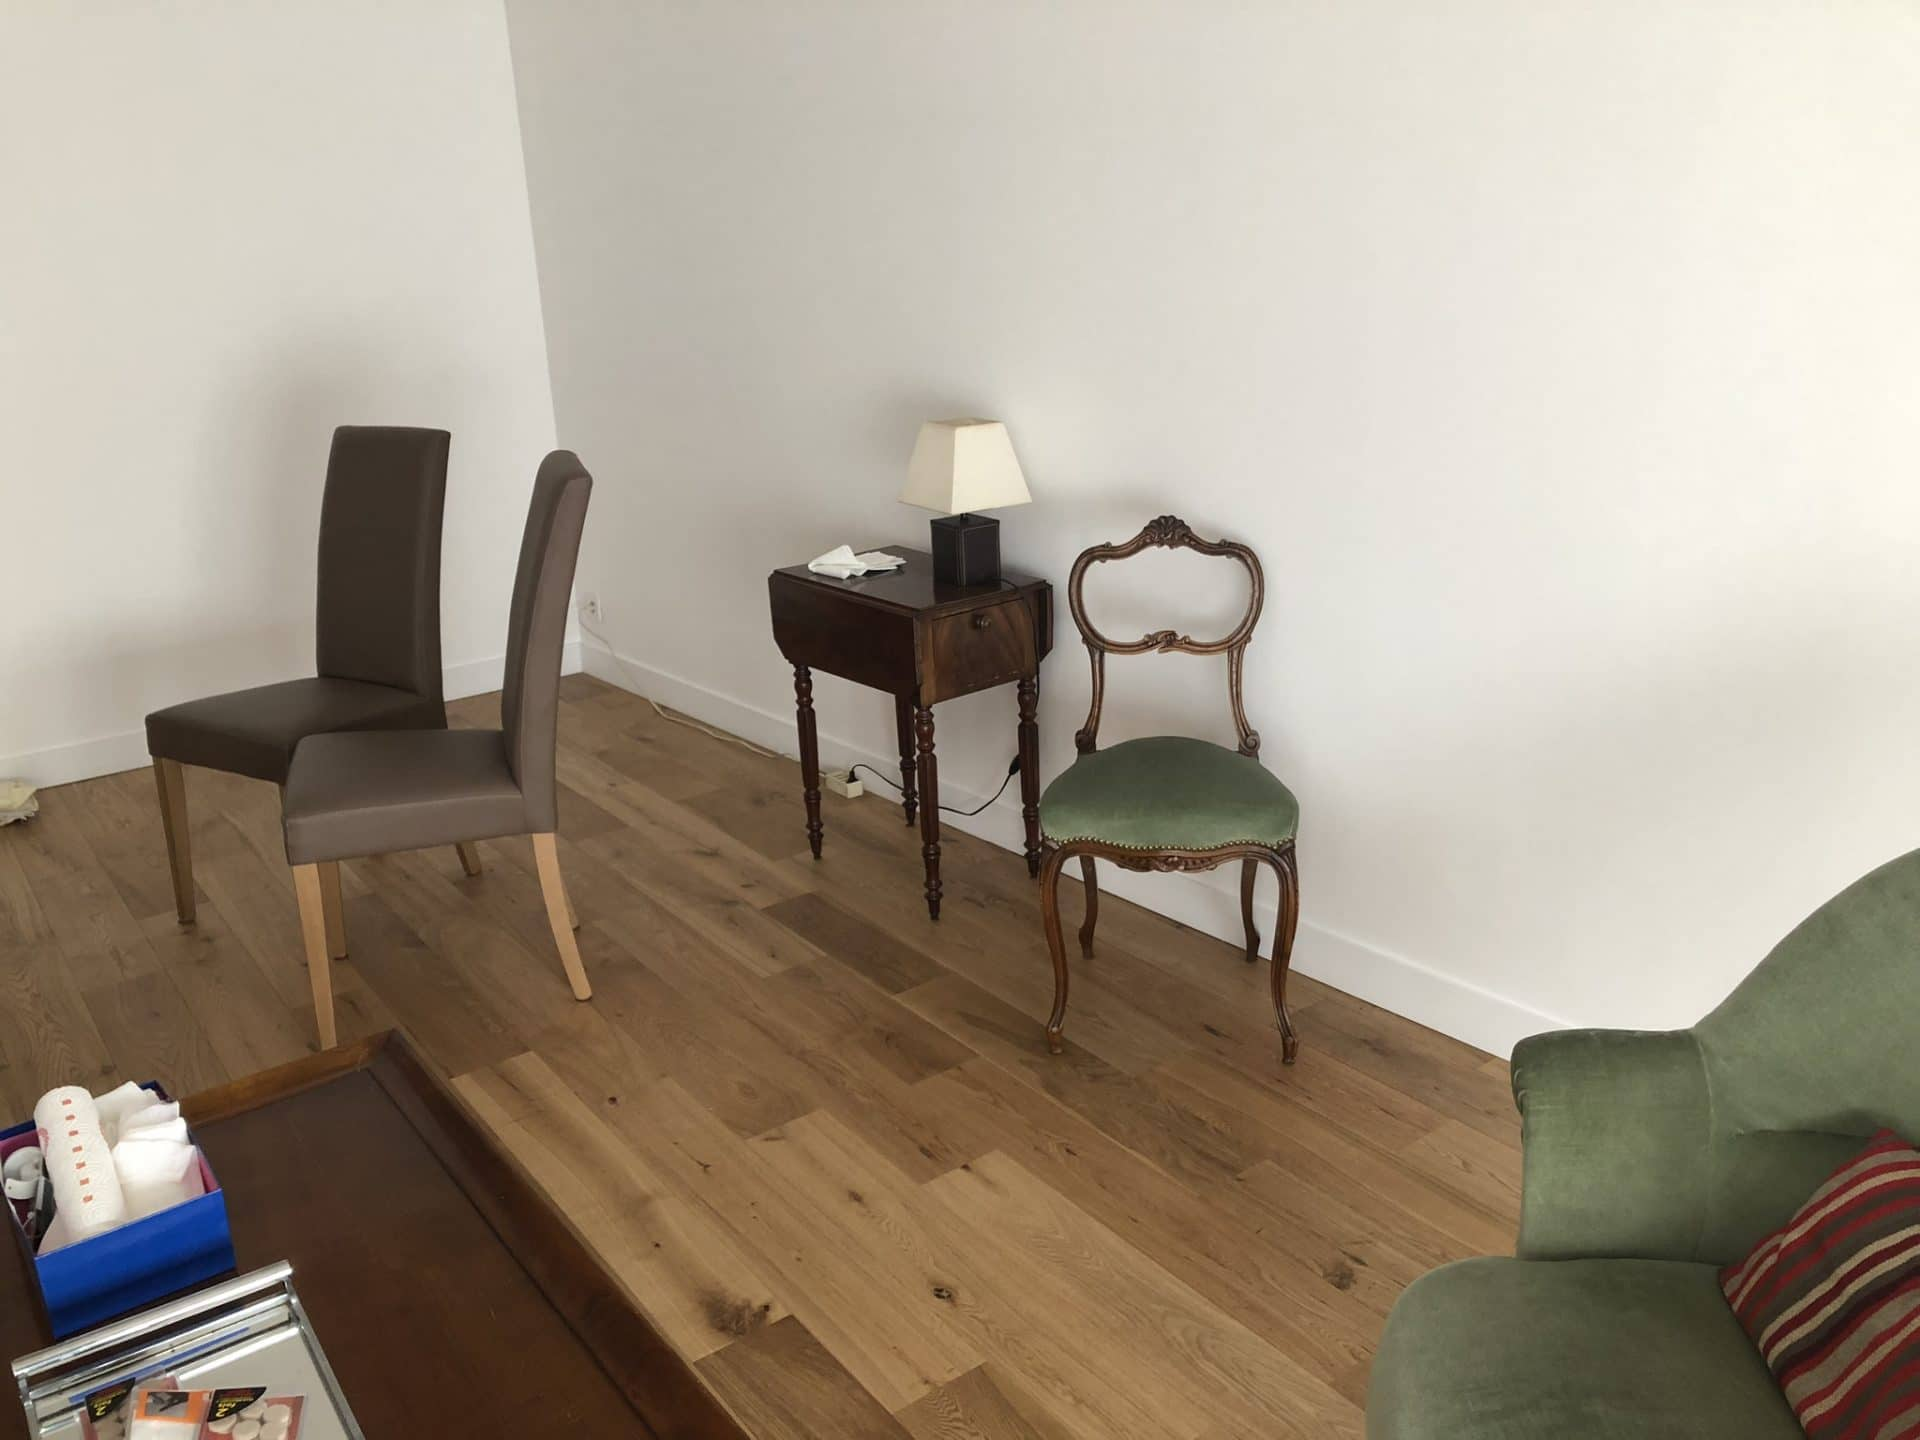 Rénovation partielle d'un appartement dans le 11e arrondissement de Paris